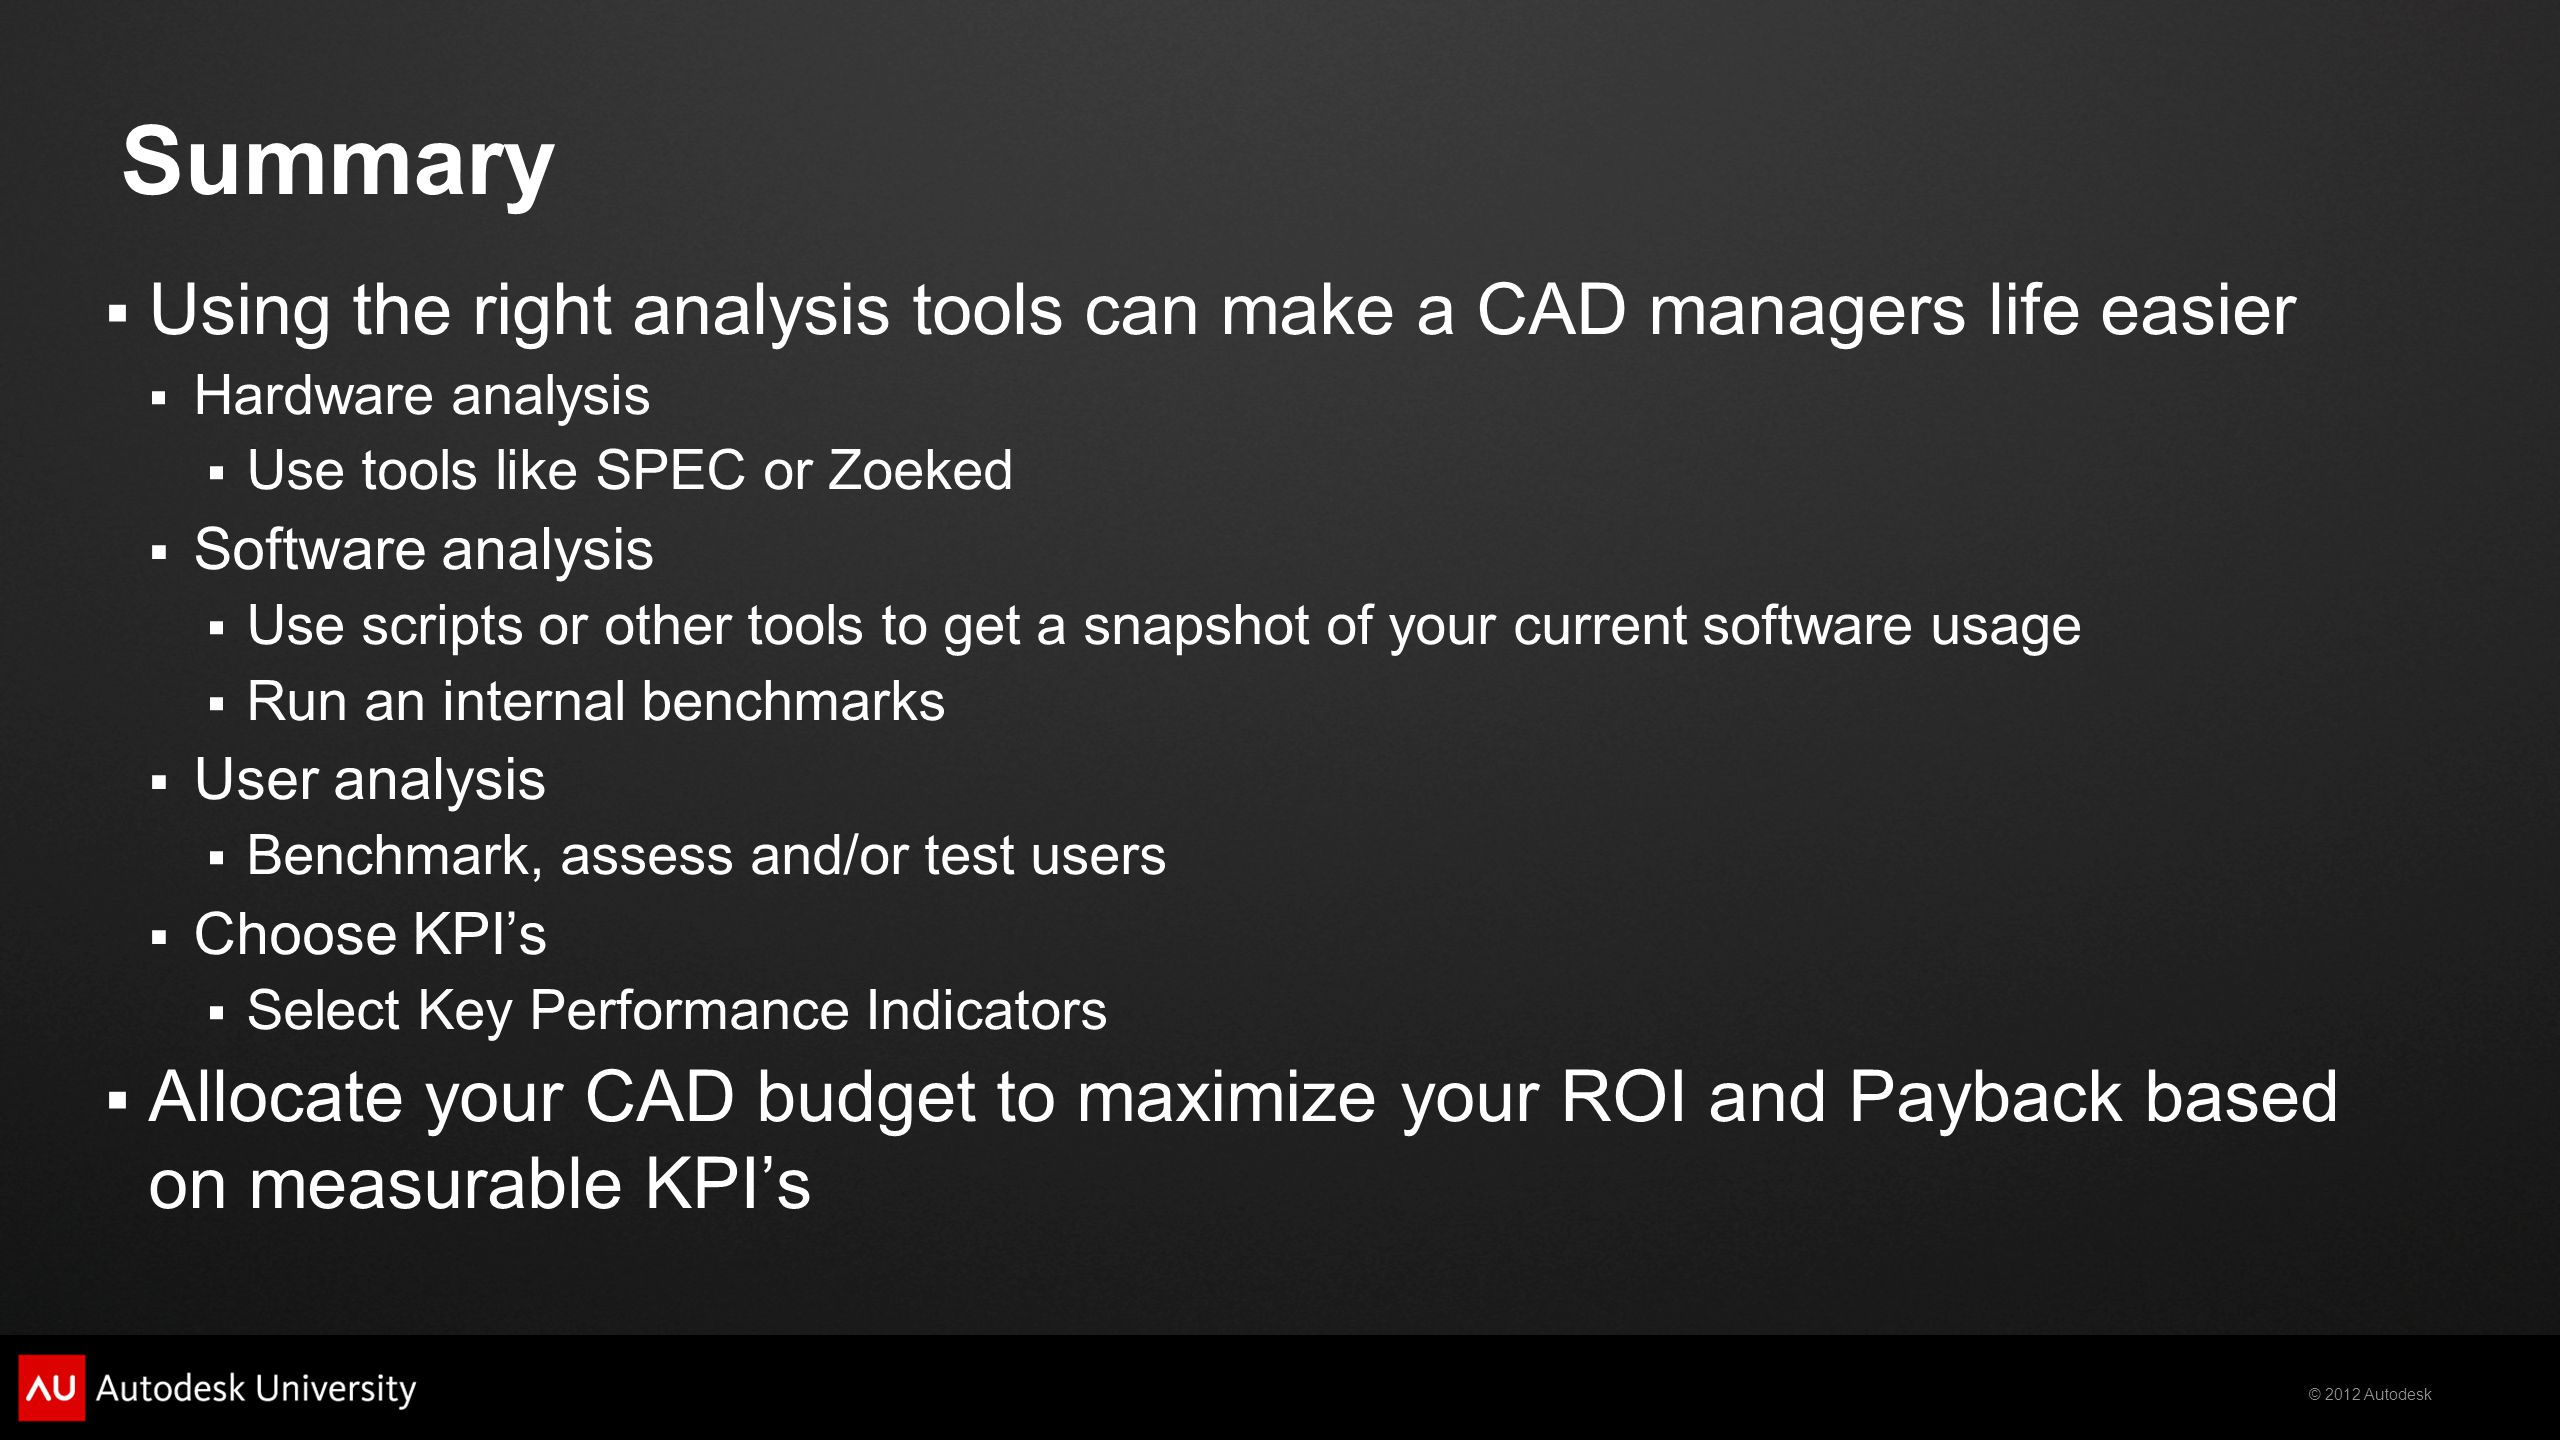 Summary Using the right analysis tools can make a CAD managers life easier. Hardware analysis. Use tools like SPEC or Zoeked.